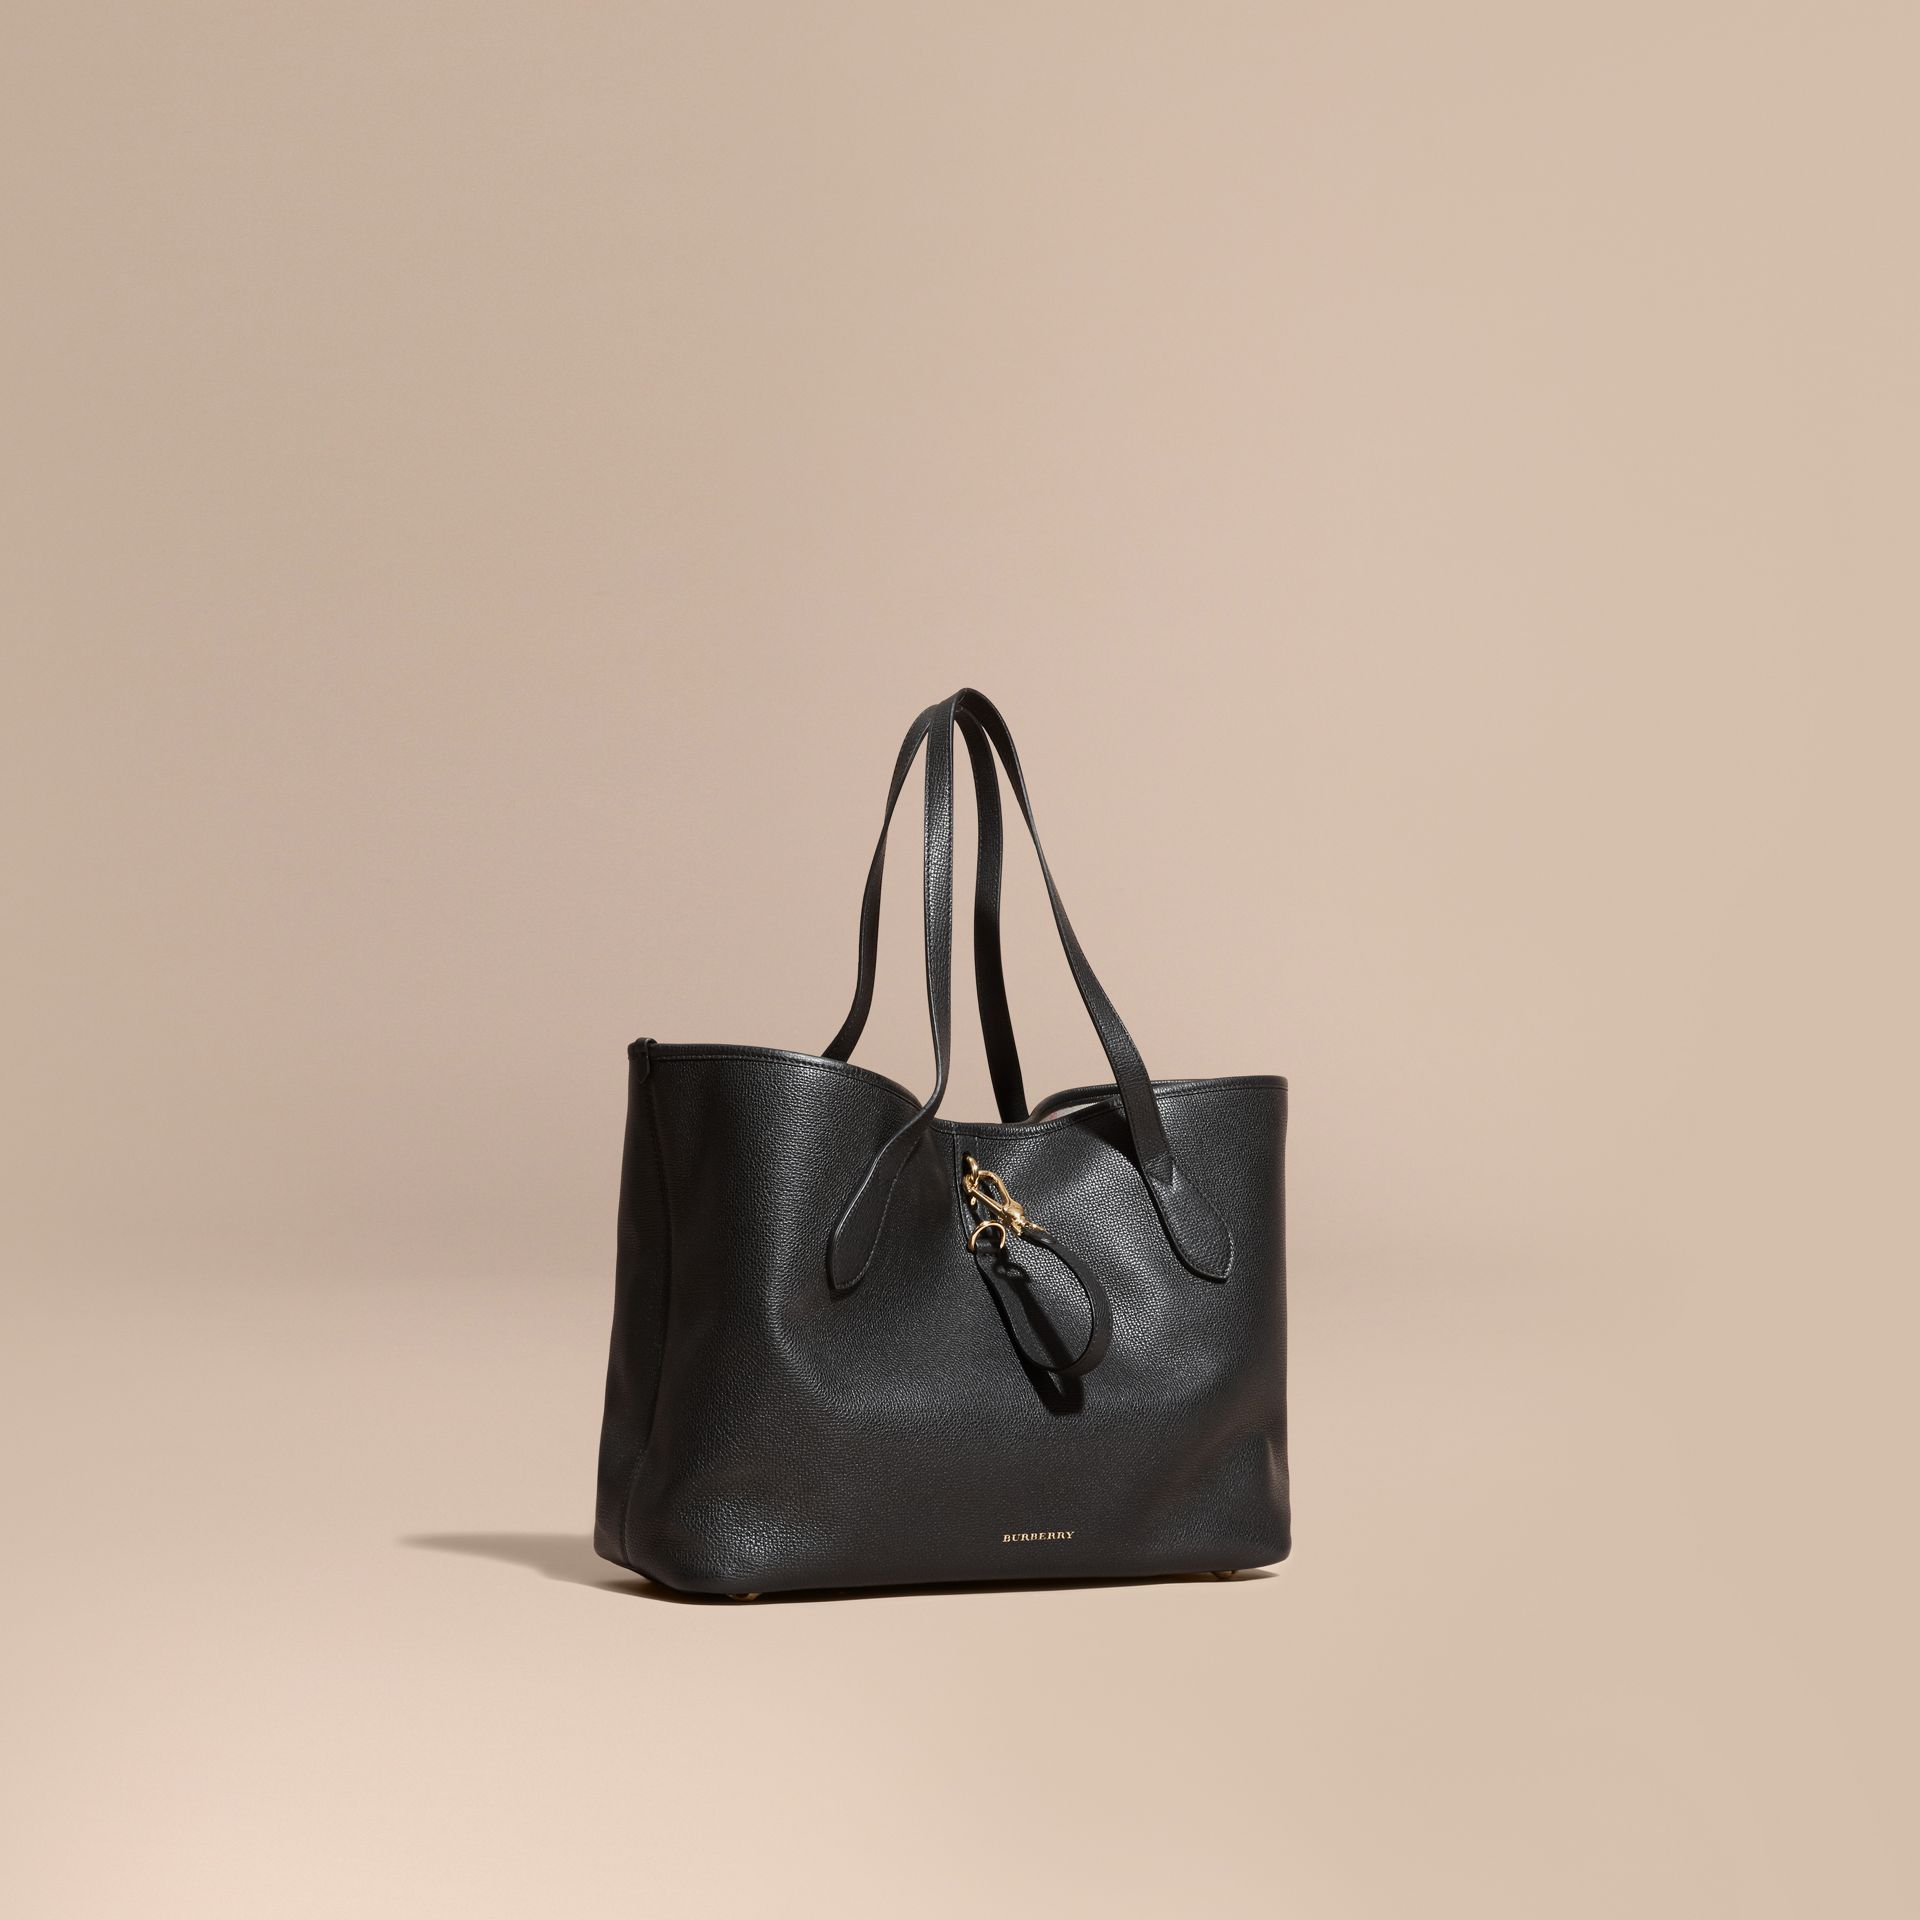 Medium Grainy Leather Tote Bag Black - gallery image 1